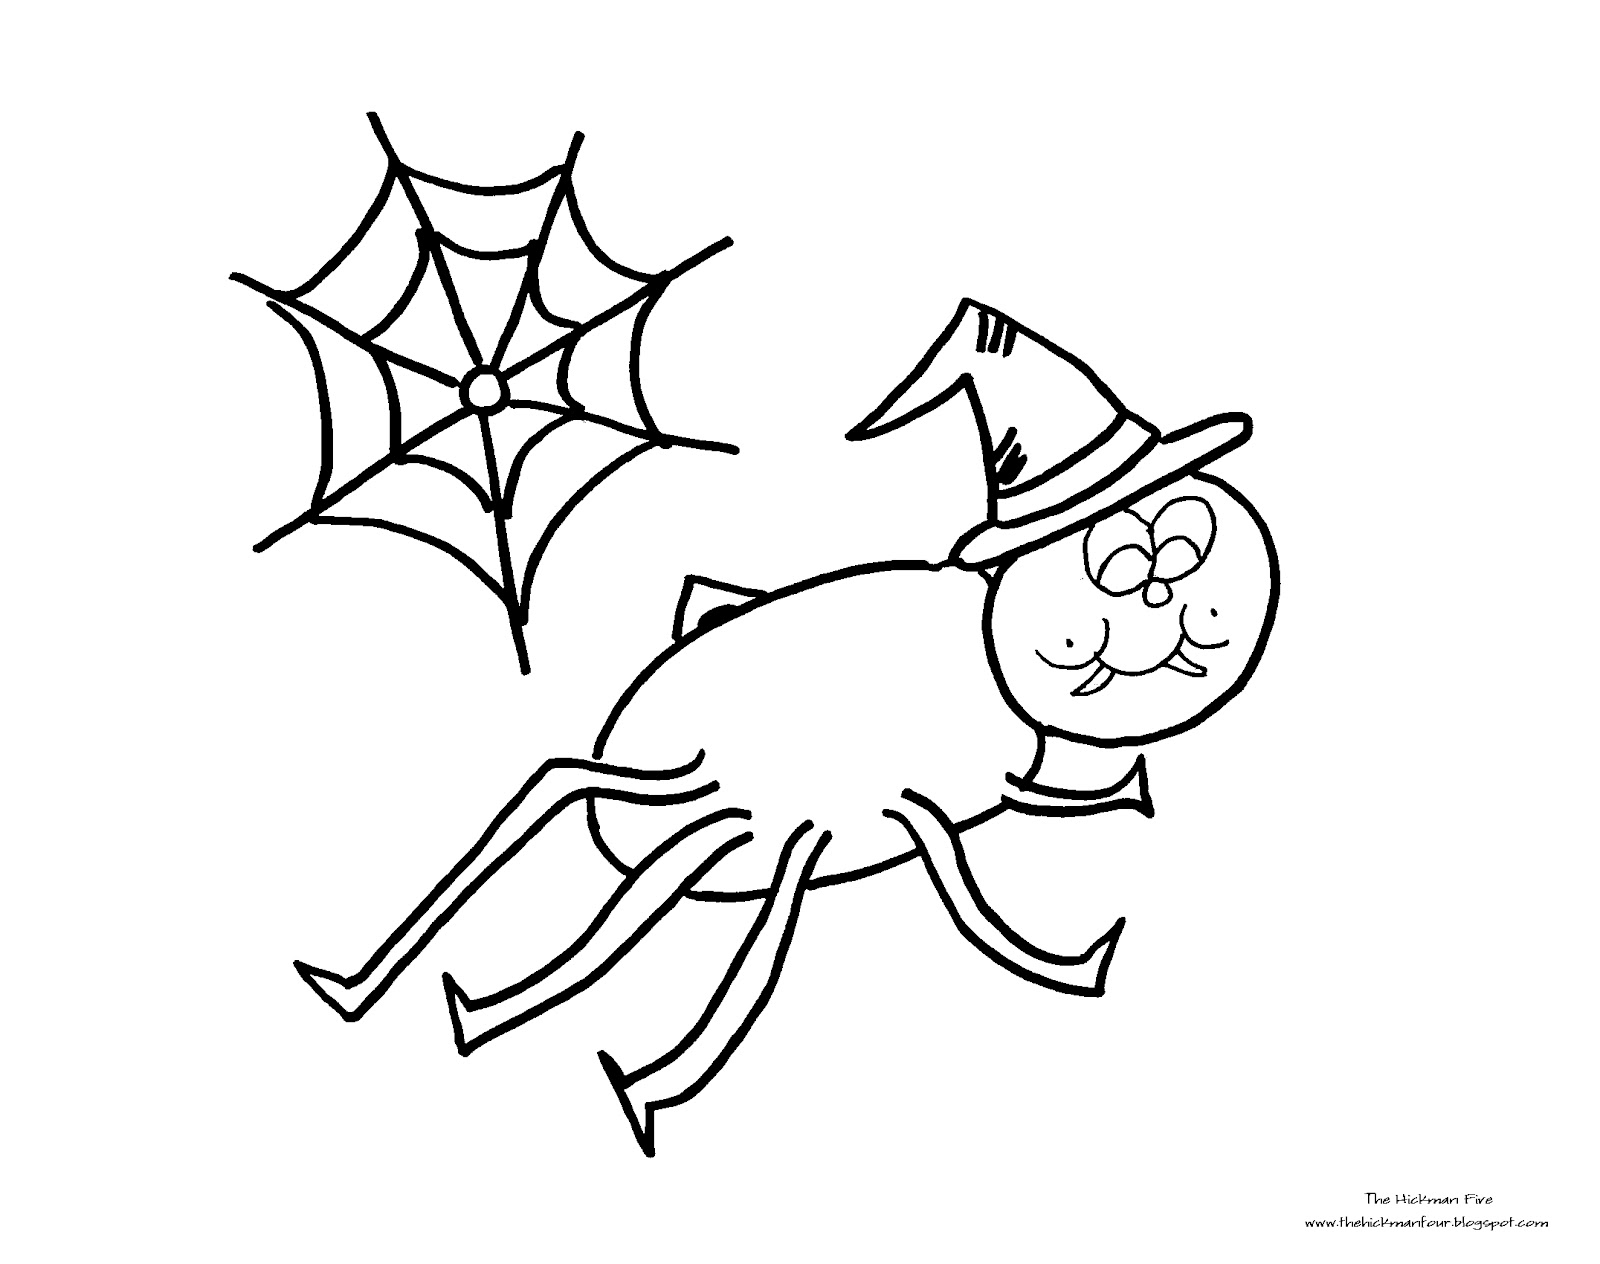 Itsy Bitsy Spider Coloring Page - Eskayalitim